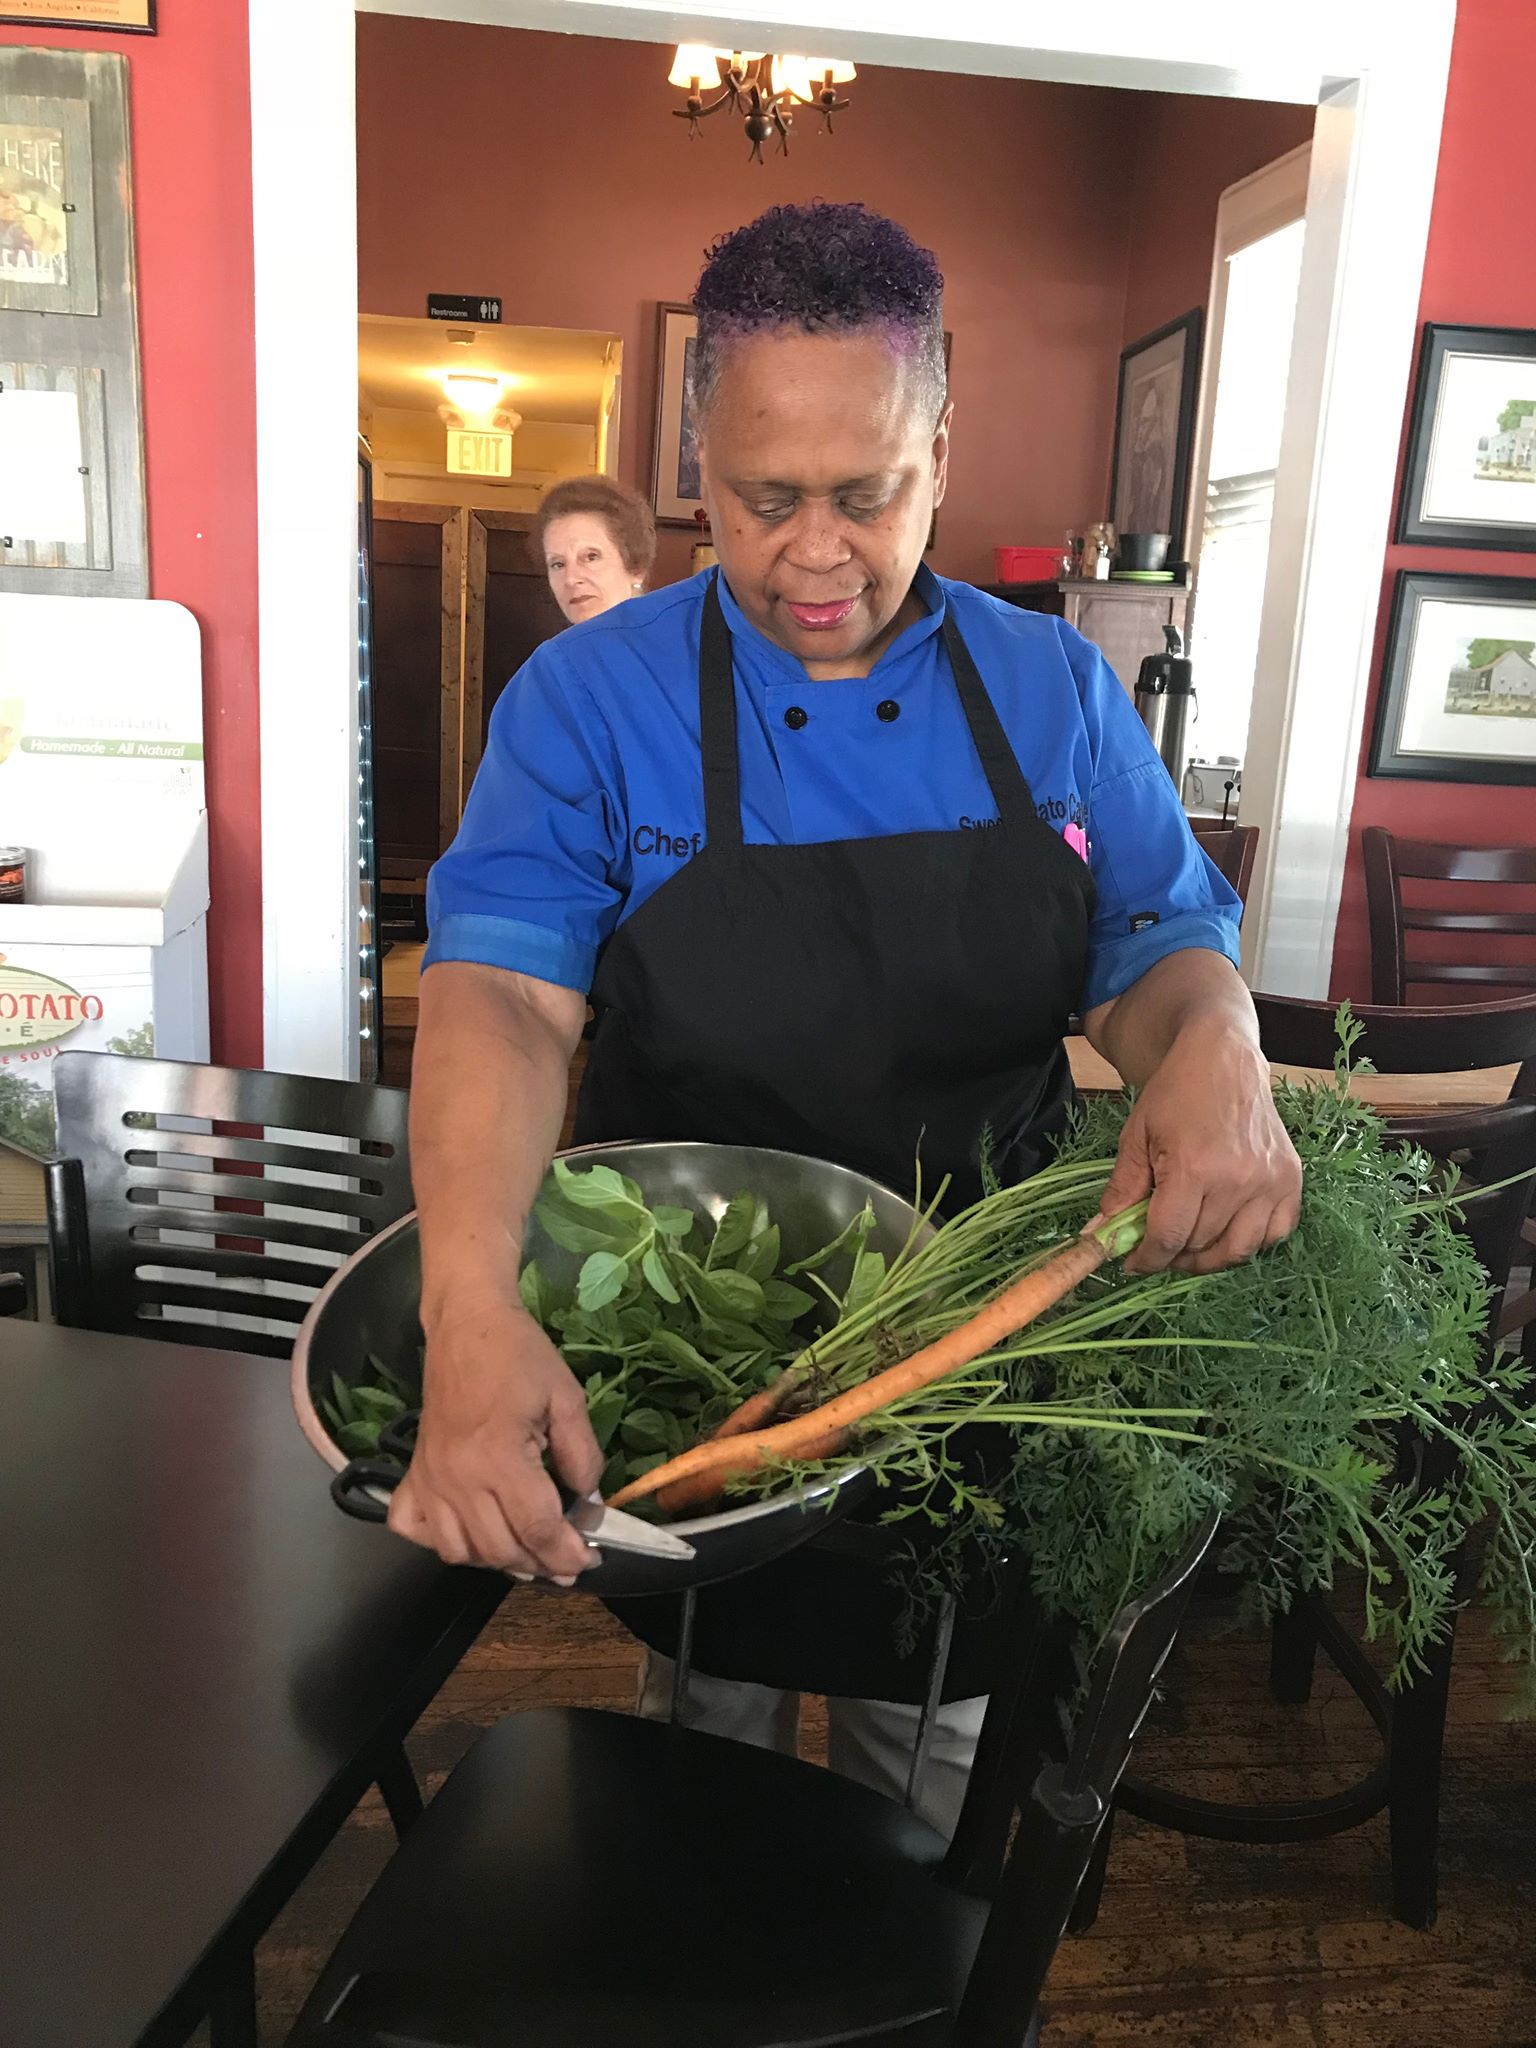 Chef Karen Pulling from the Garden - Sweet Potato Cafe